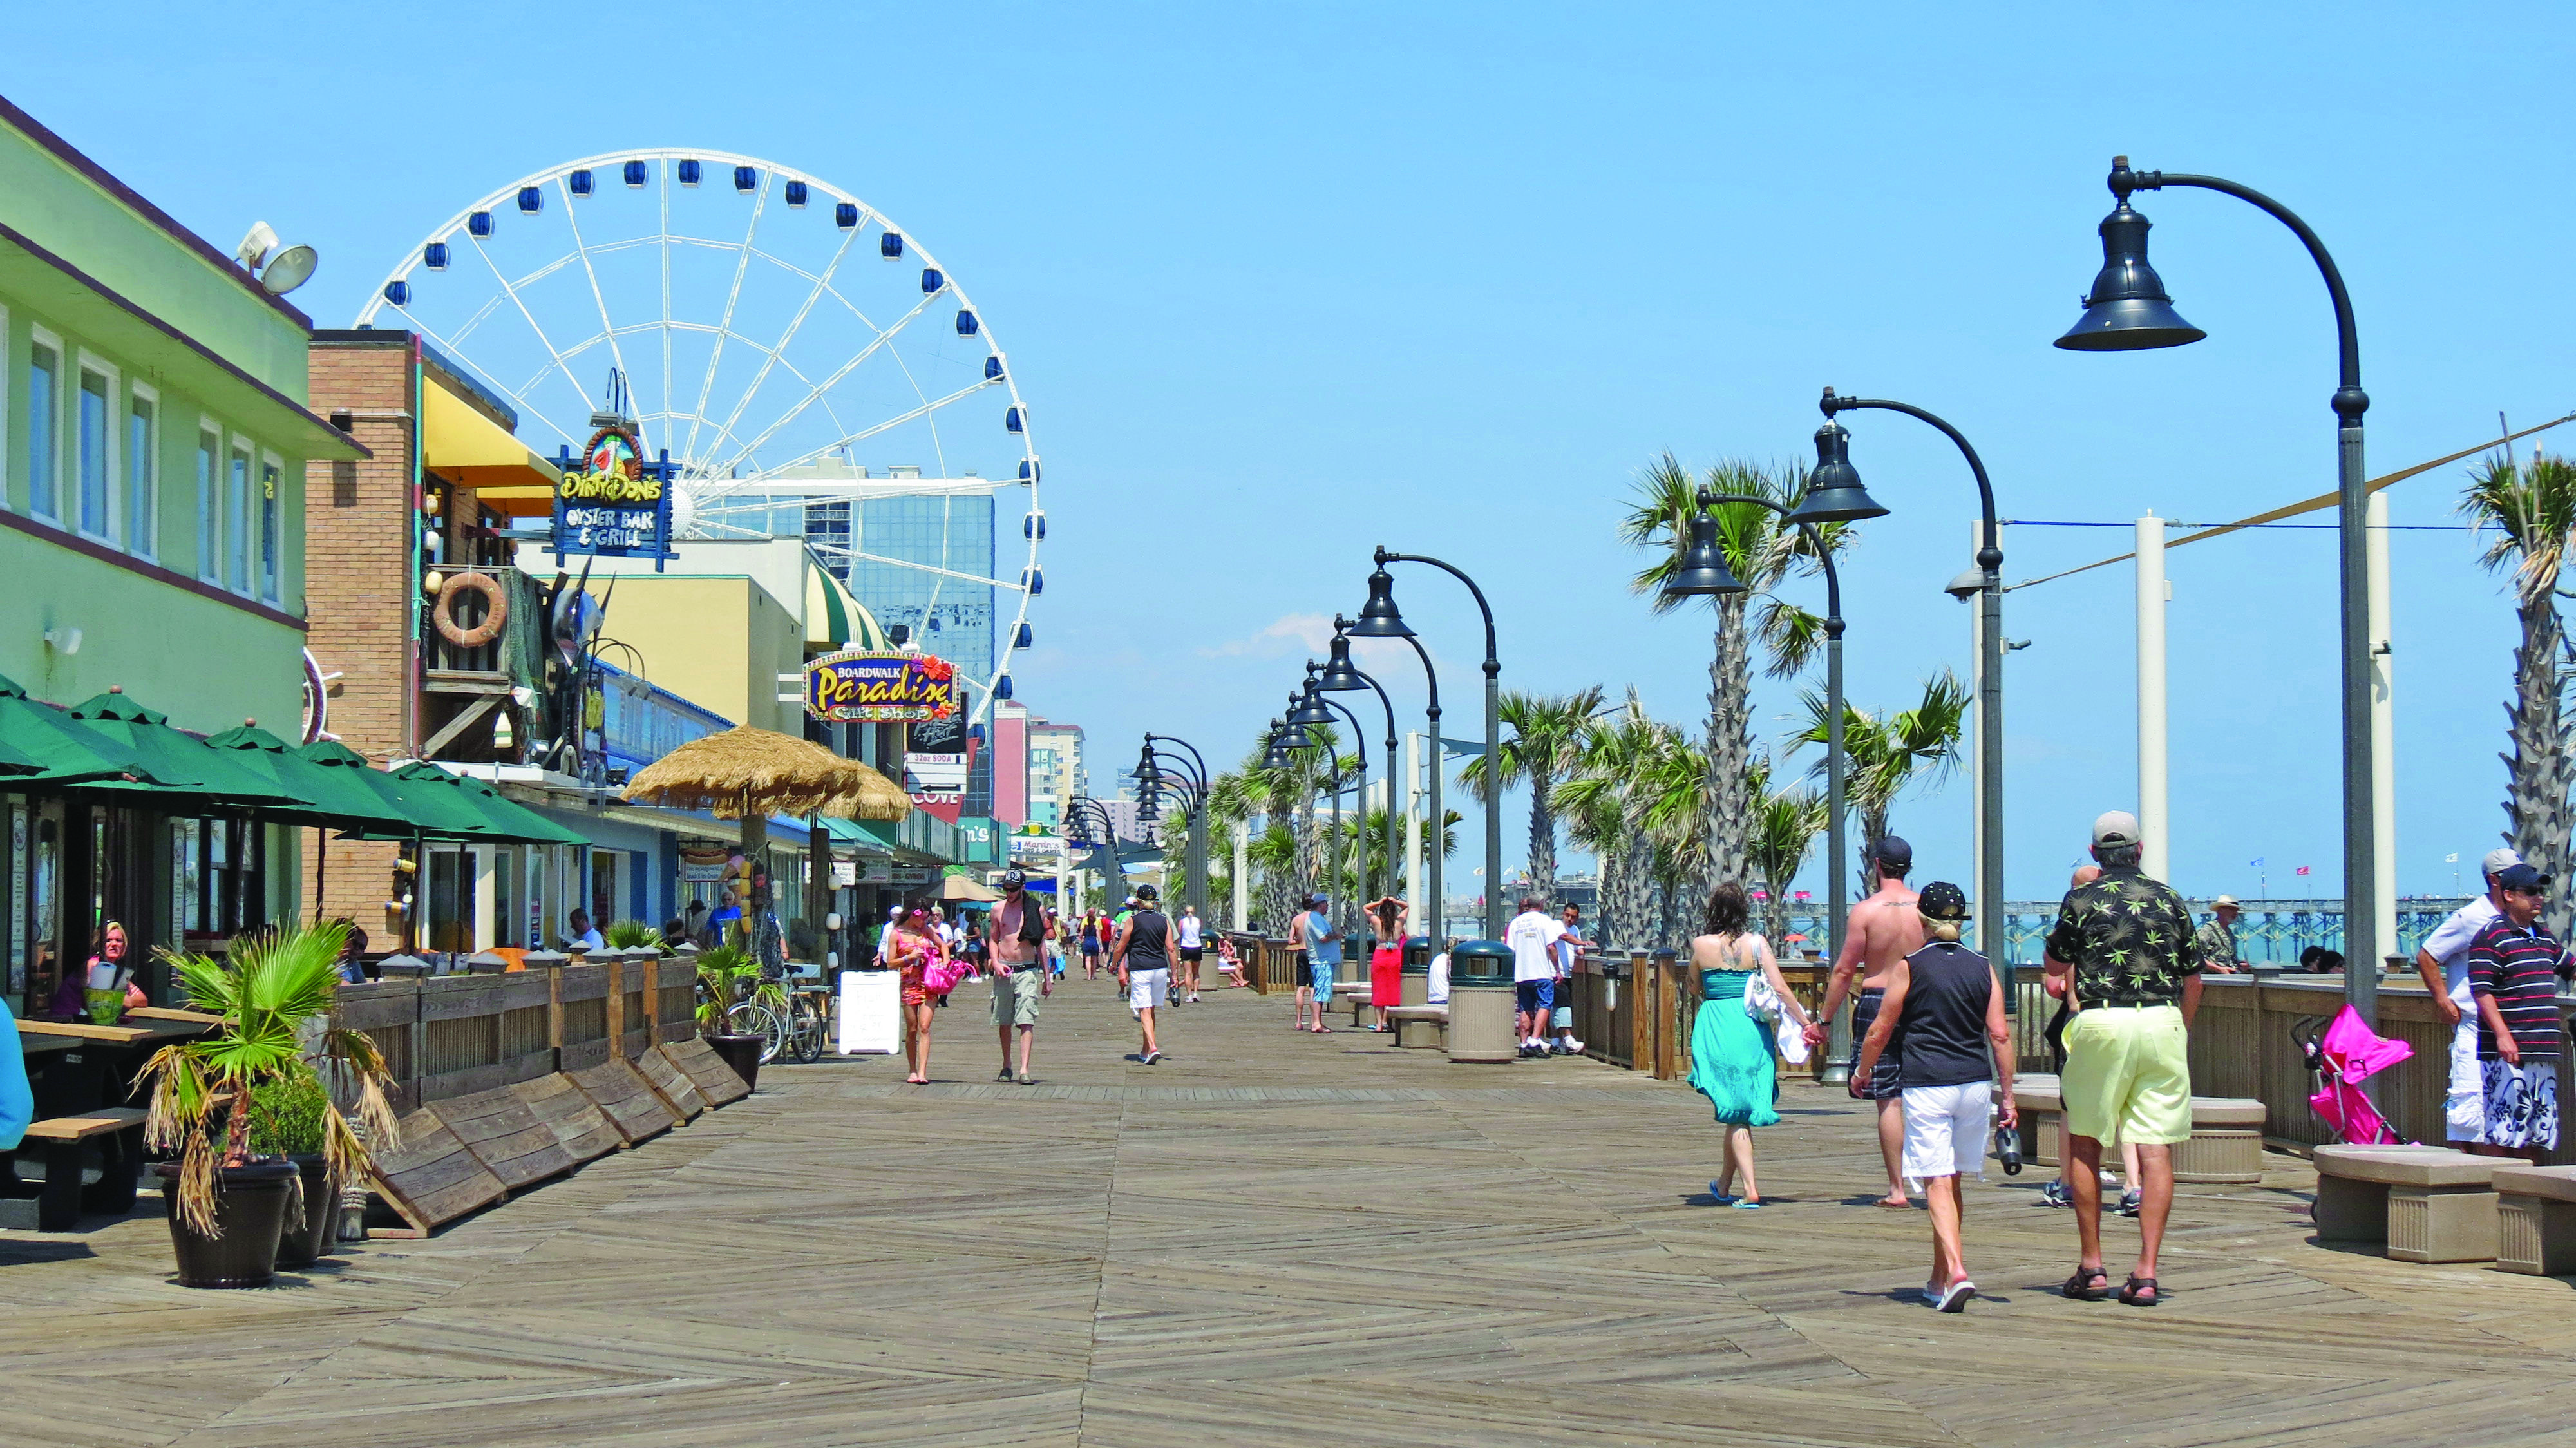 The Boardwalk Myrtle Beach Sc Amazing Things My Eyes Have Seen